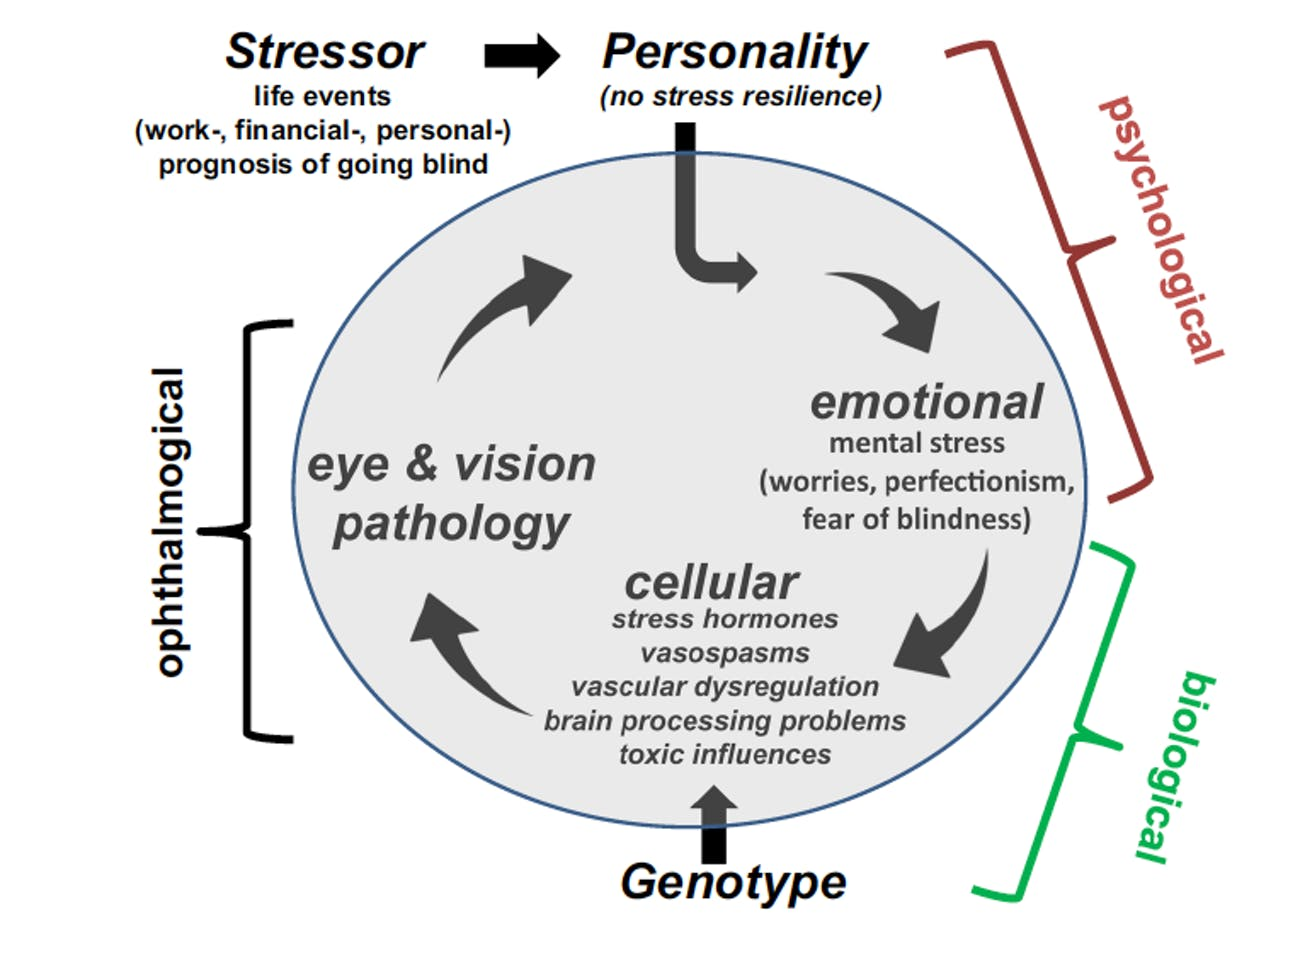 stress personality vision